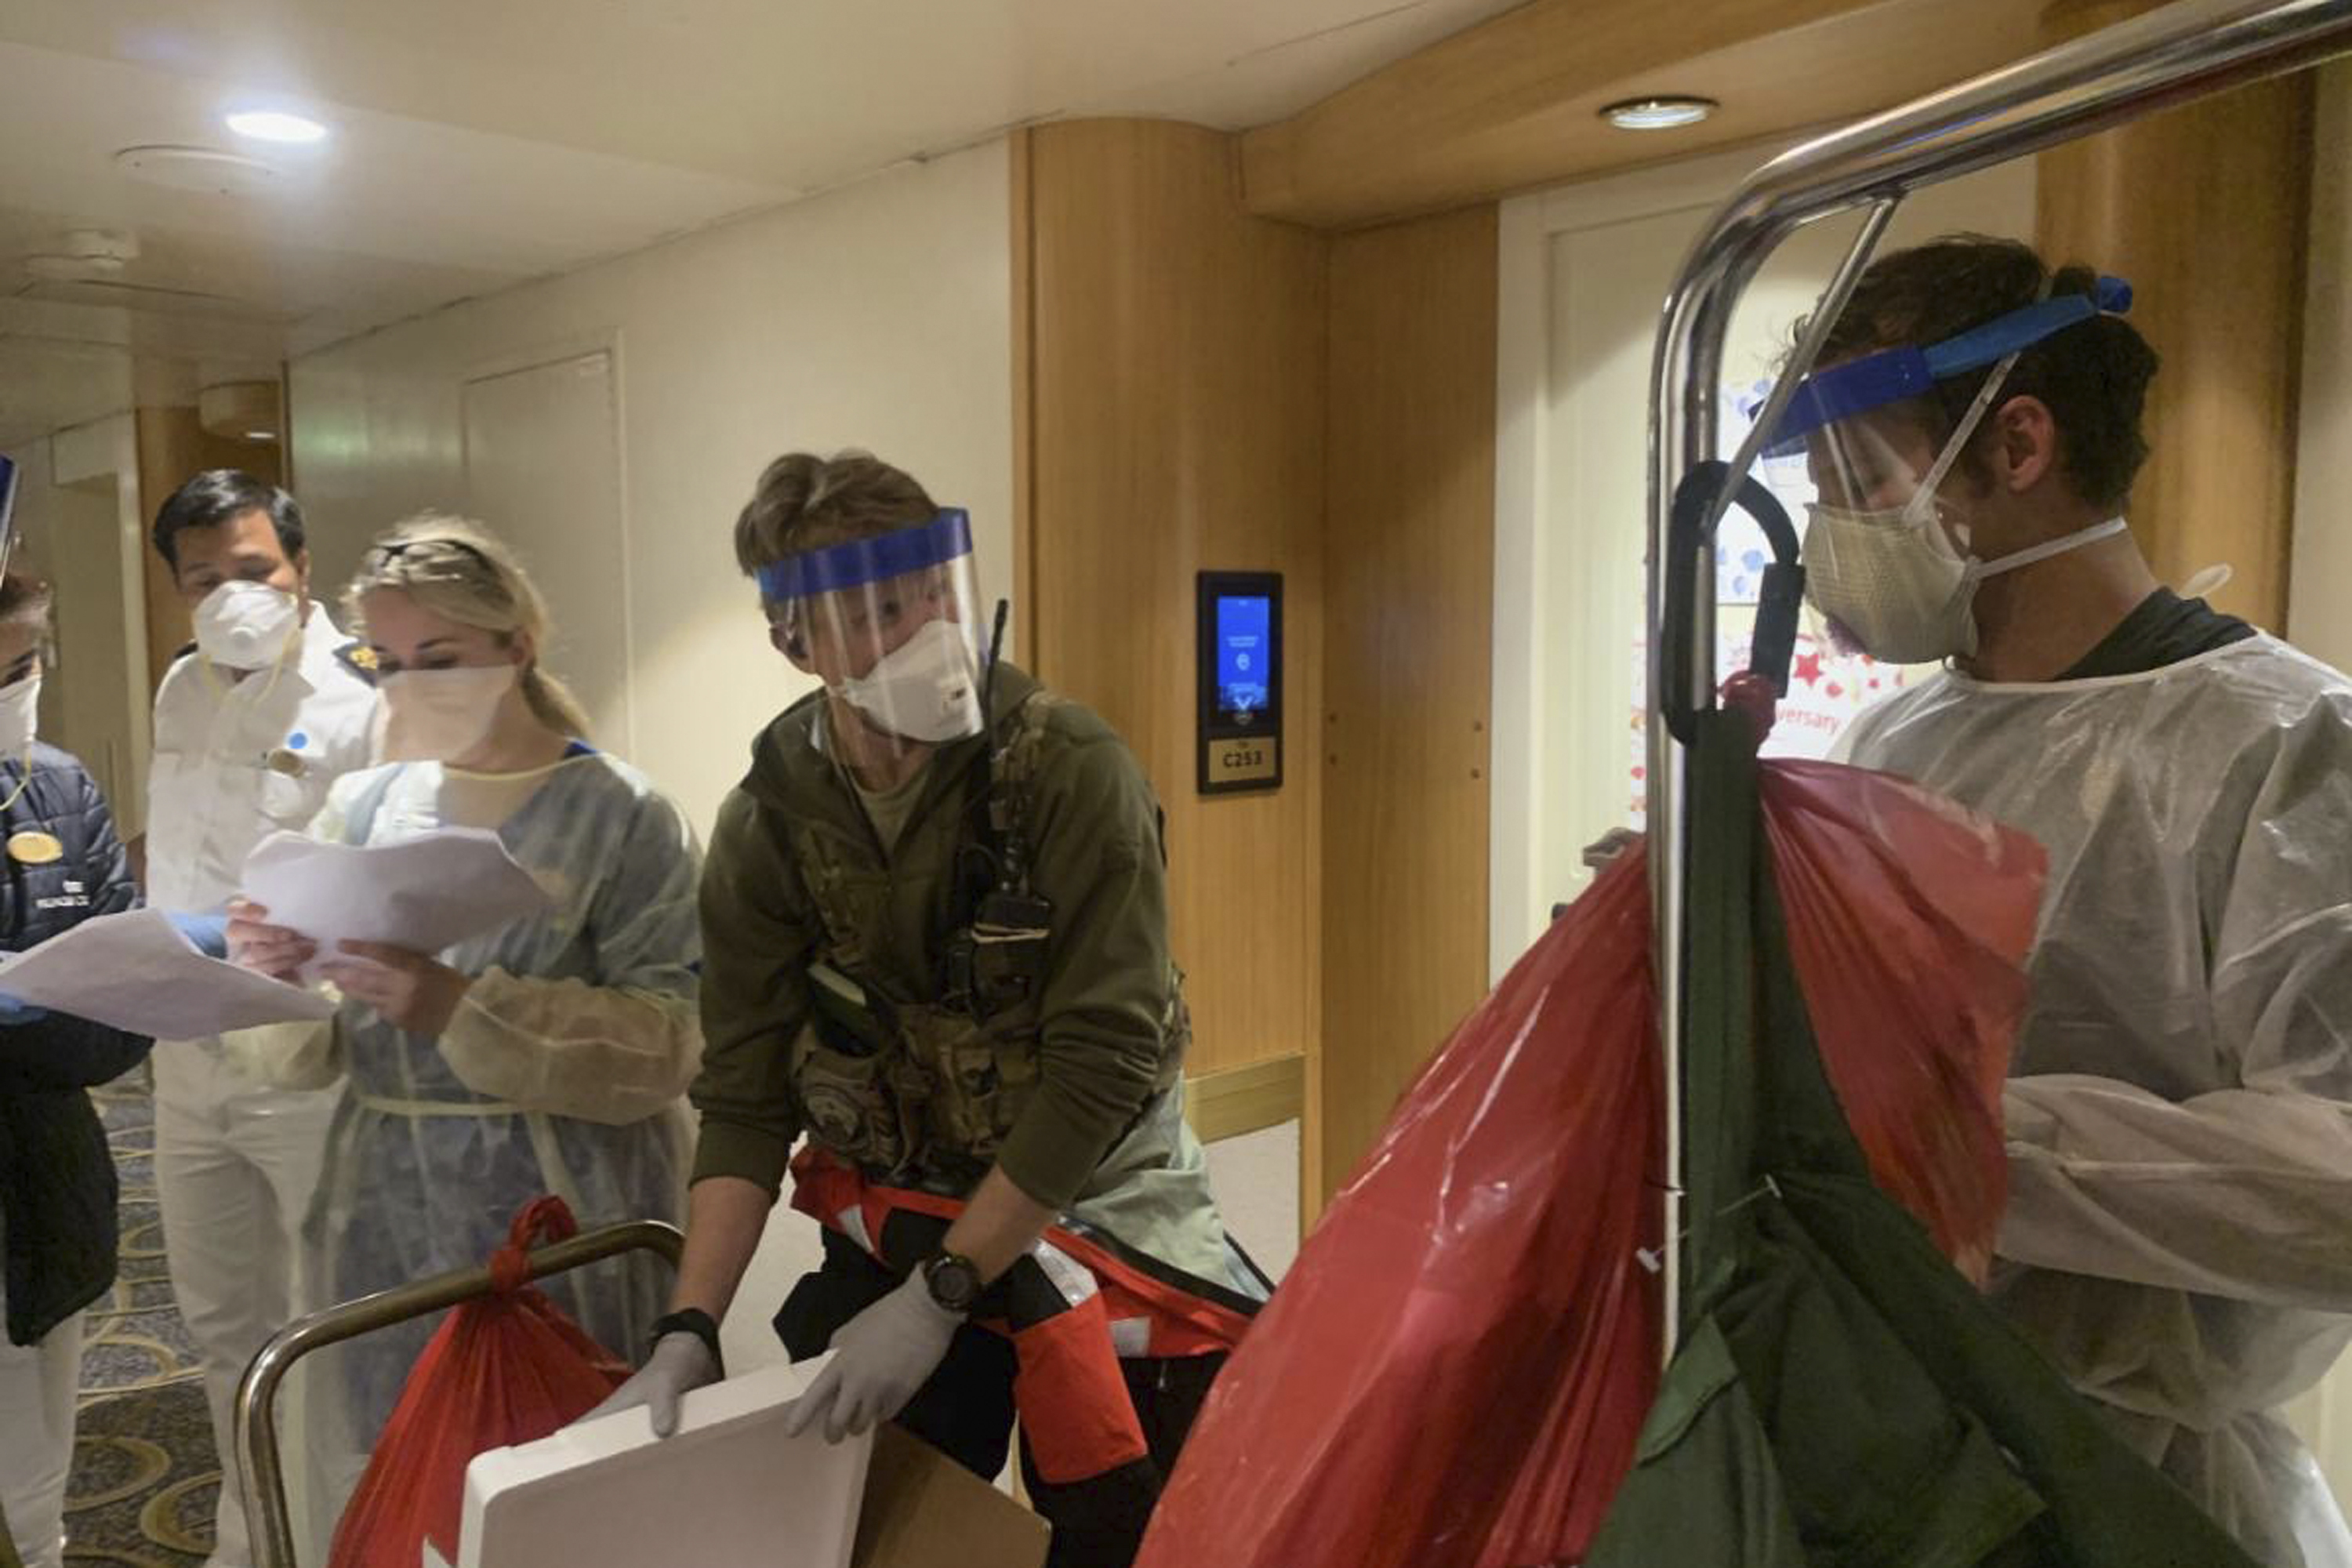 In this Thursday, March 5, 2020, photo, released by the California National Guard, Guardian Angels, a group of medical personnel with the 129th Rescue Wing, working alongside individuals from the Centers for Disease Control and Prevention, don protective equipment after delivering virus testing kits to the Grand Princess cruise ship off the coast of California. Passengers on a cruise ship off the California coast were instructed to stay in their cabins as they awaited test results Friday that could show whether the coronavirus is circulating among the more than 3,500 people aboard. (Chief Master Sgt. Seth Zweben/California National Guard via AP)